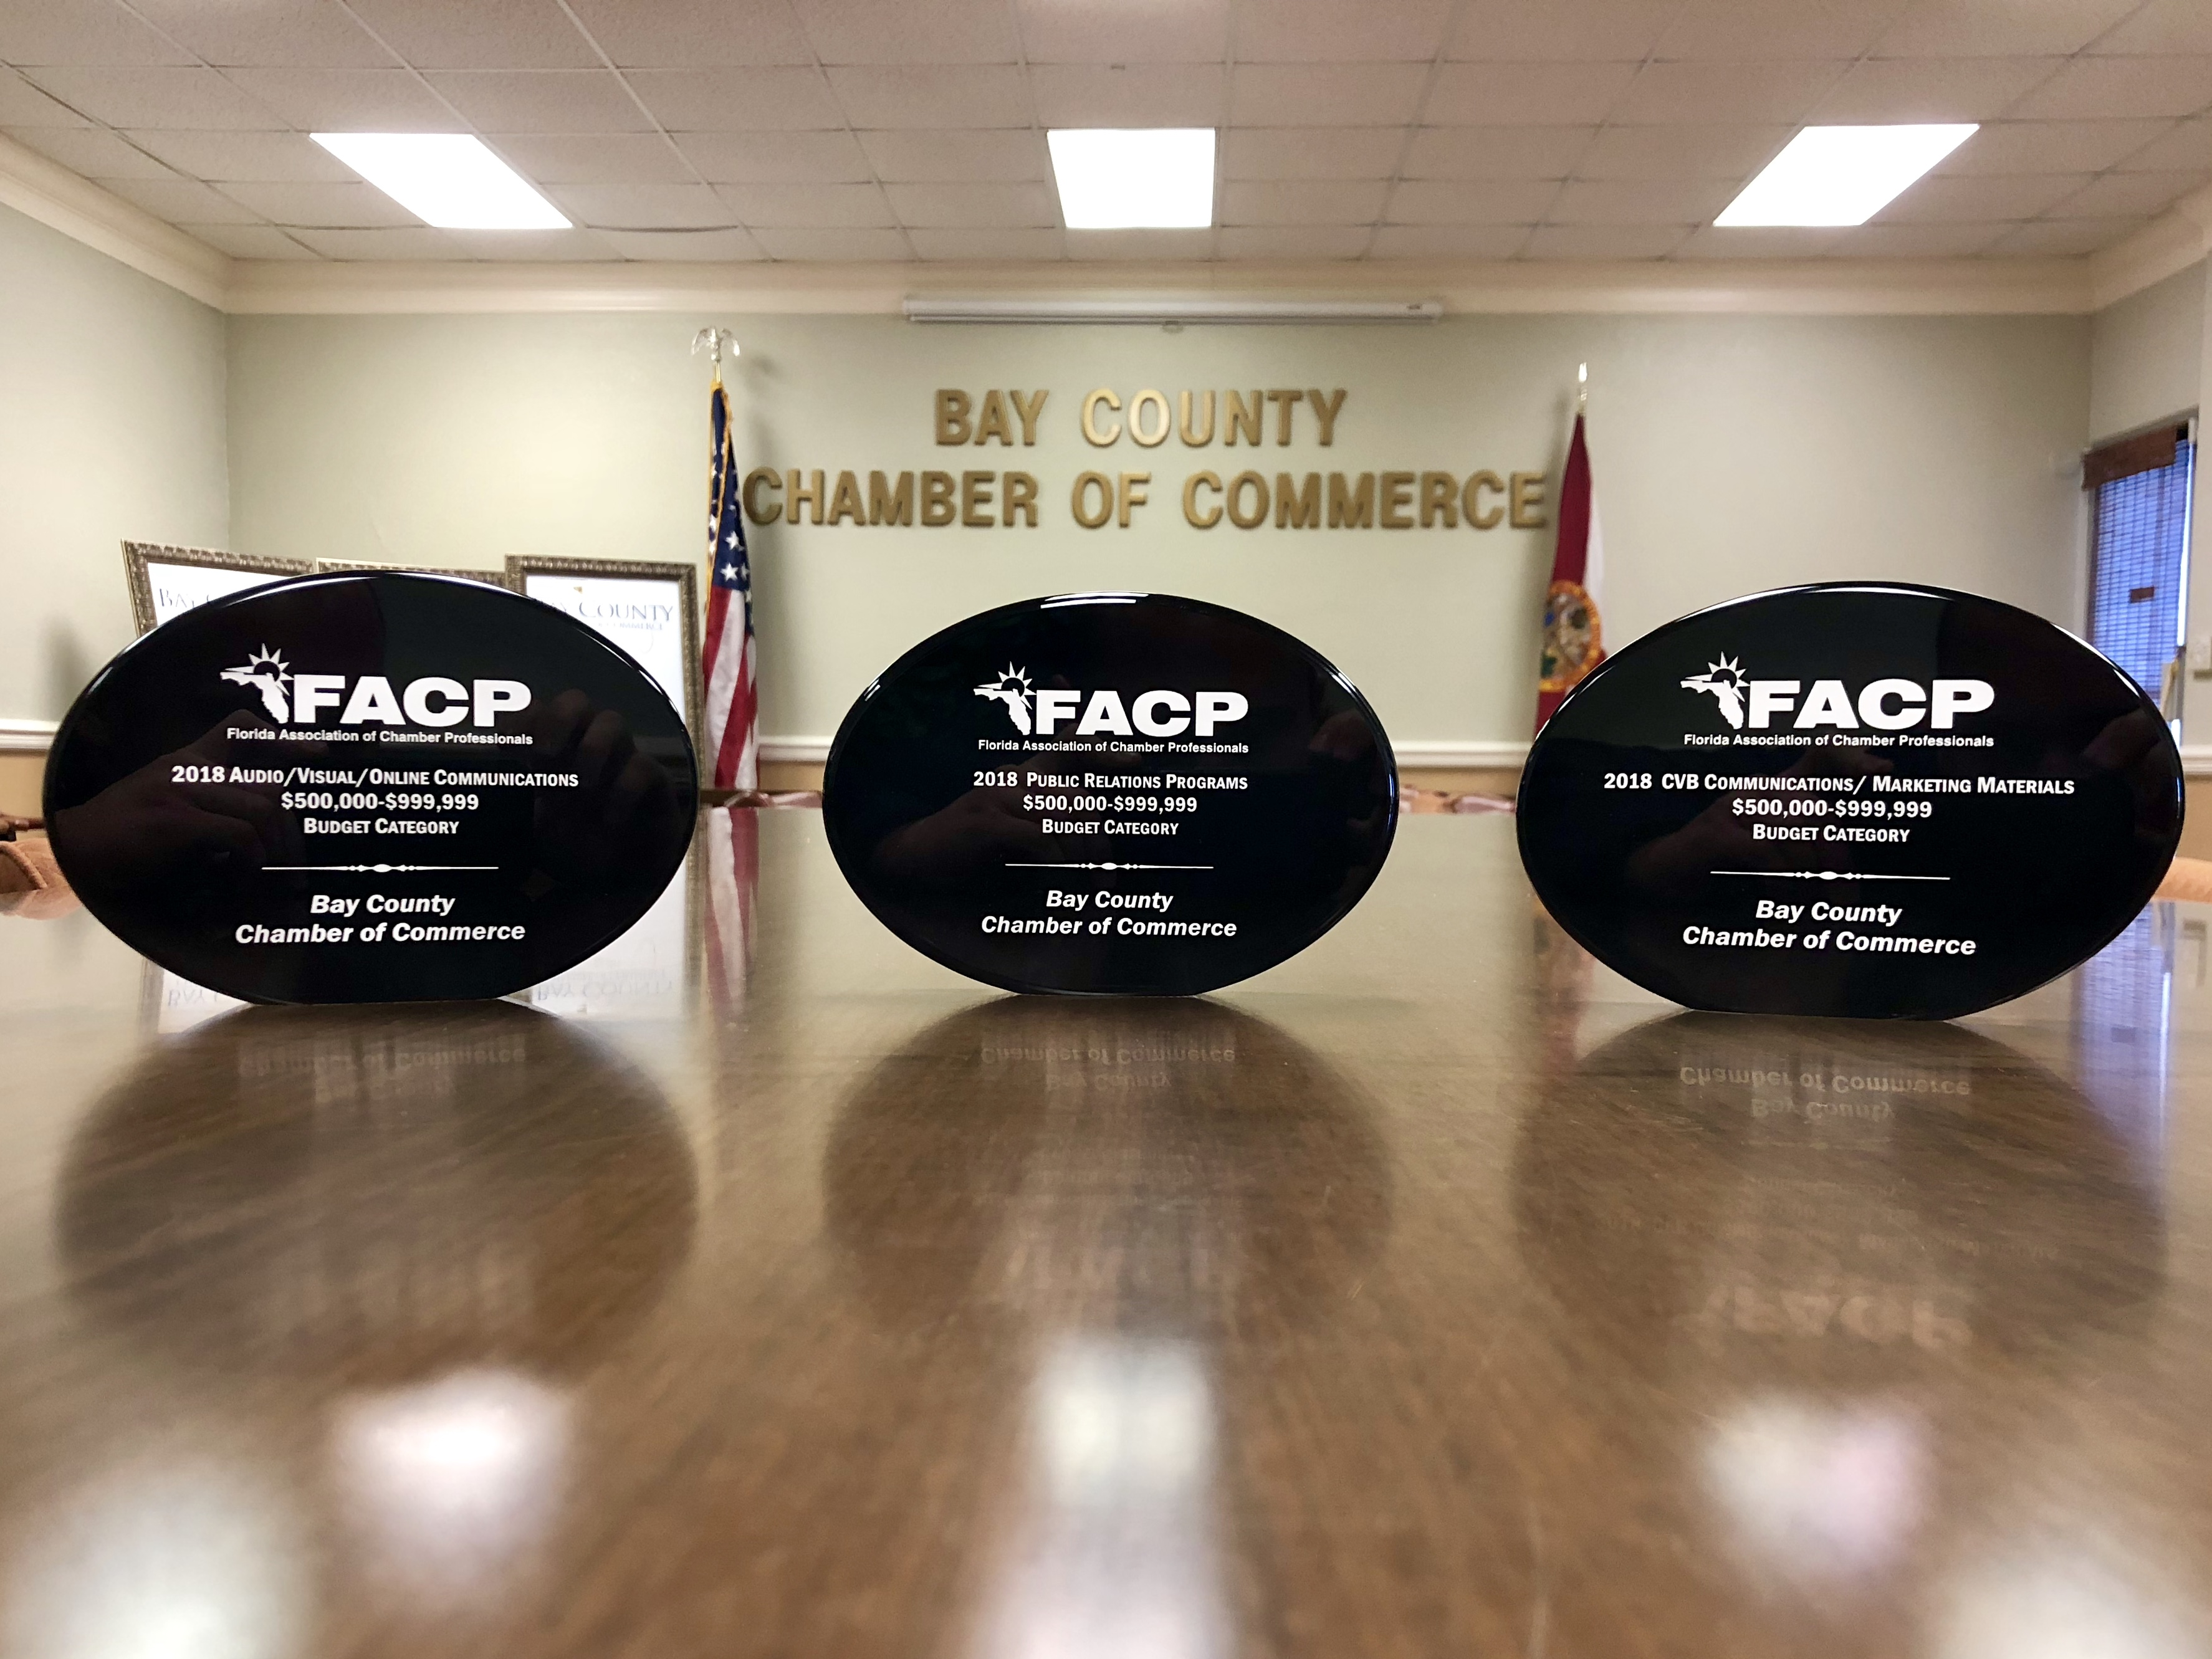 Bay County Chamber of Commerce wins 2018 Communications Awards.